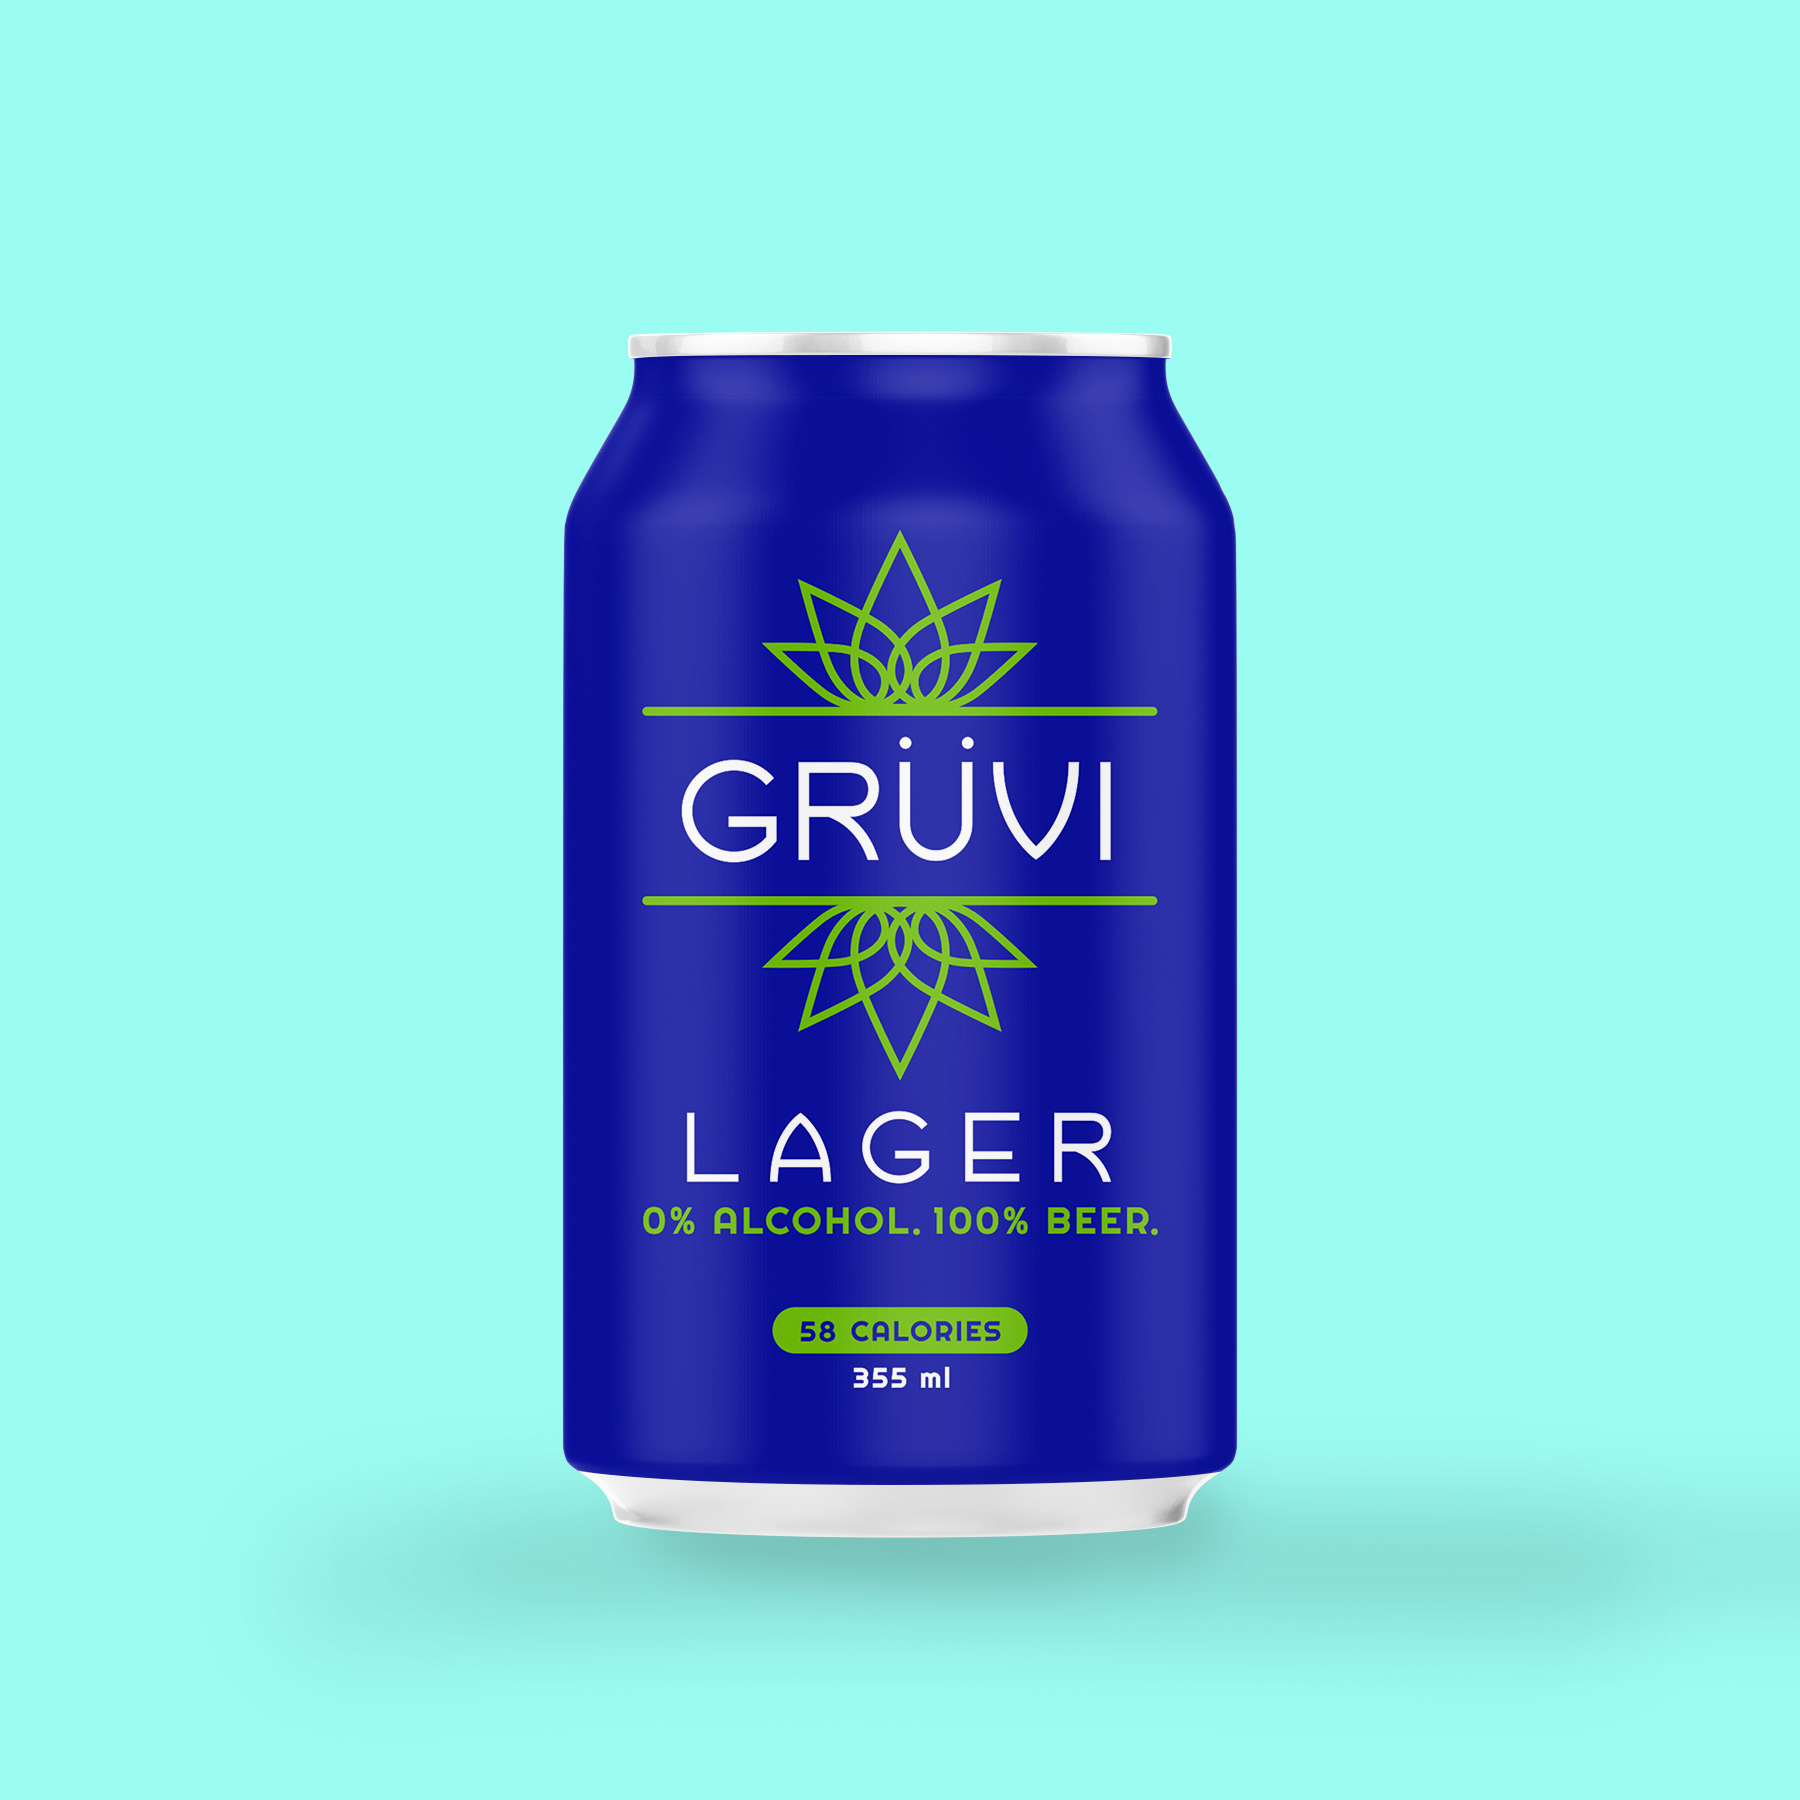 Gruvi Lager (COMING SOON)   We're close to making the most refreshing lager!